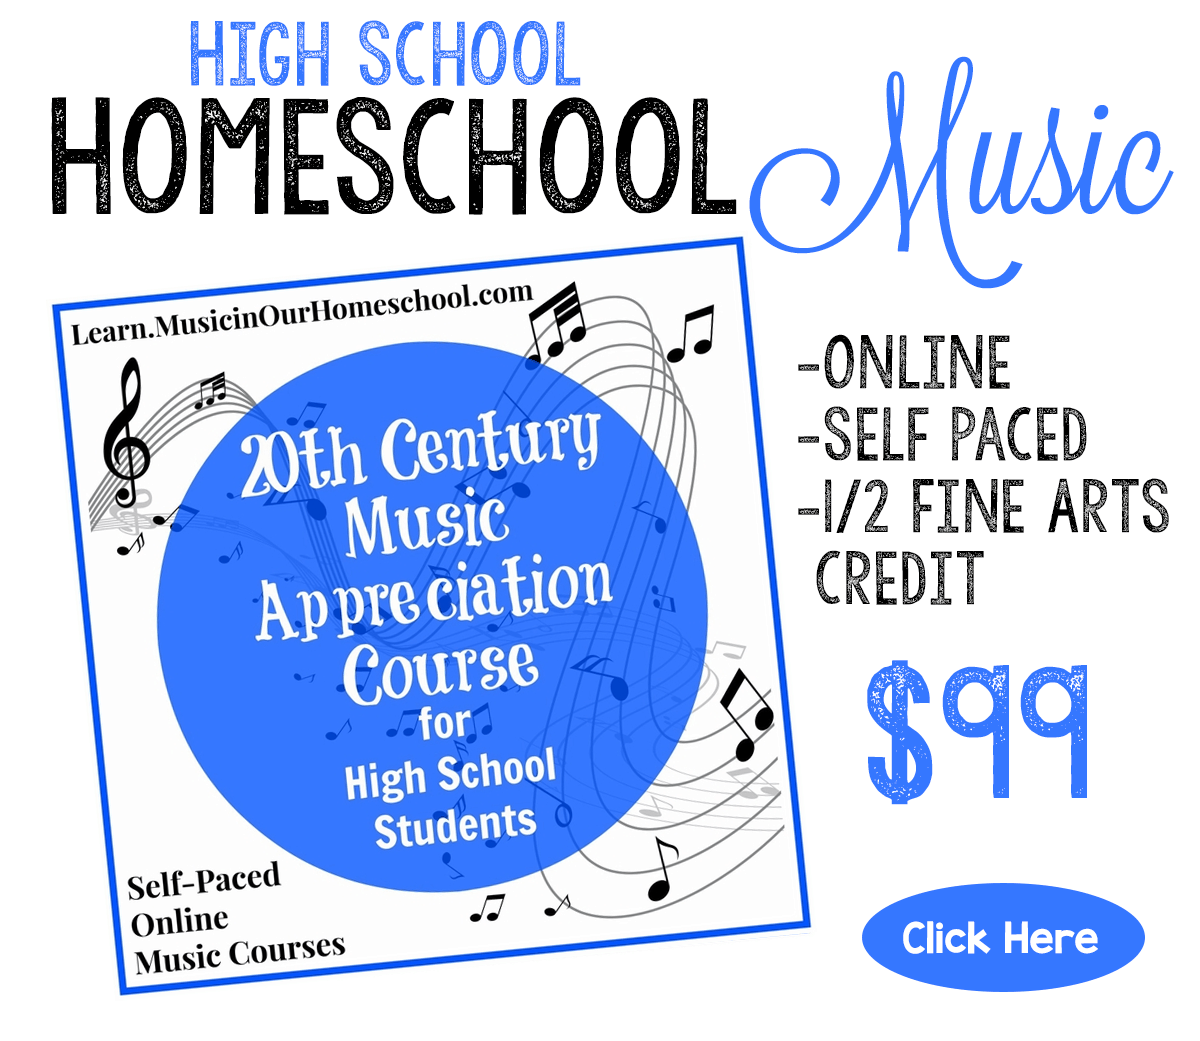 HighSchoolMusicCourse